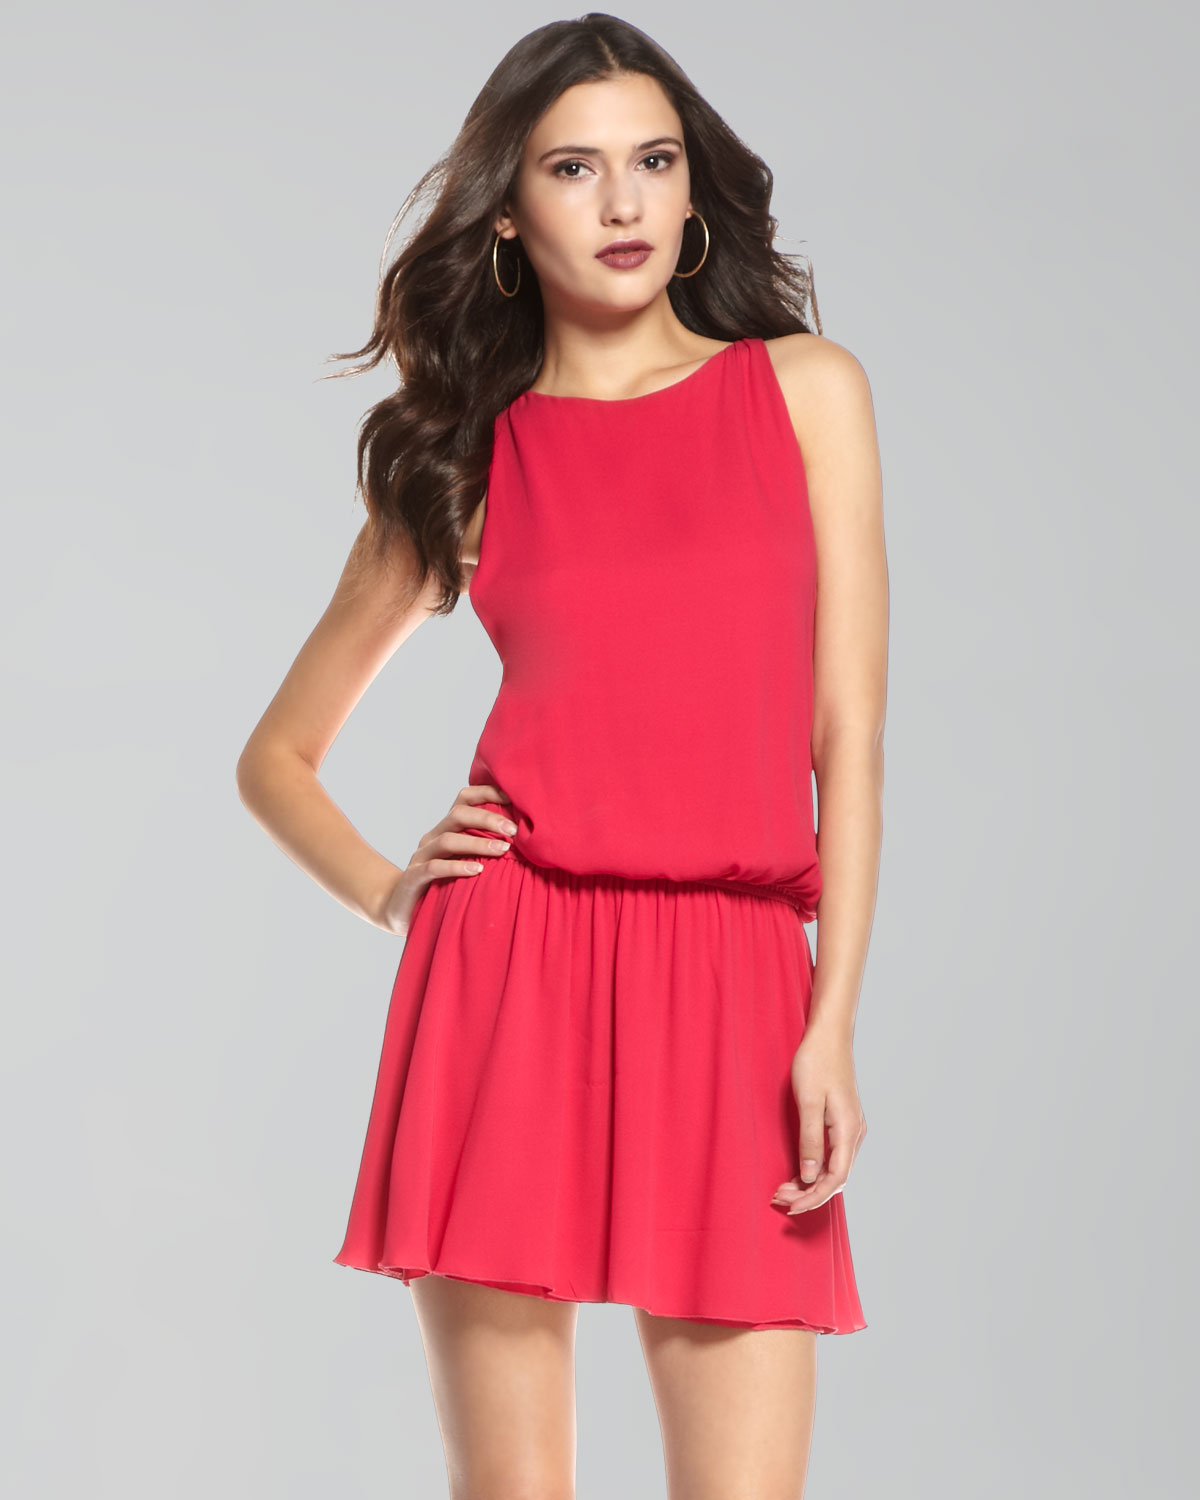 Shop women's clothing on sale at Neiman Marcus. Get free shipping on a variety of women's clothing, shoes, accessories, and more.